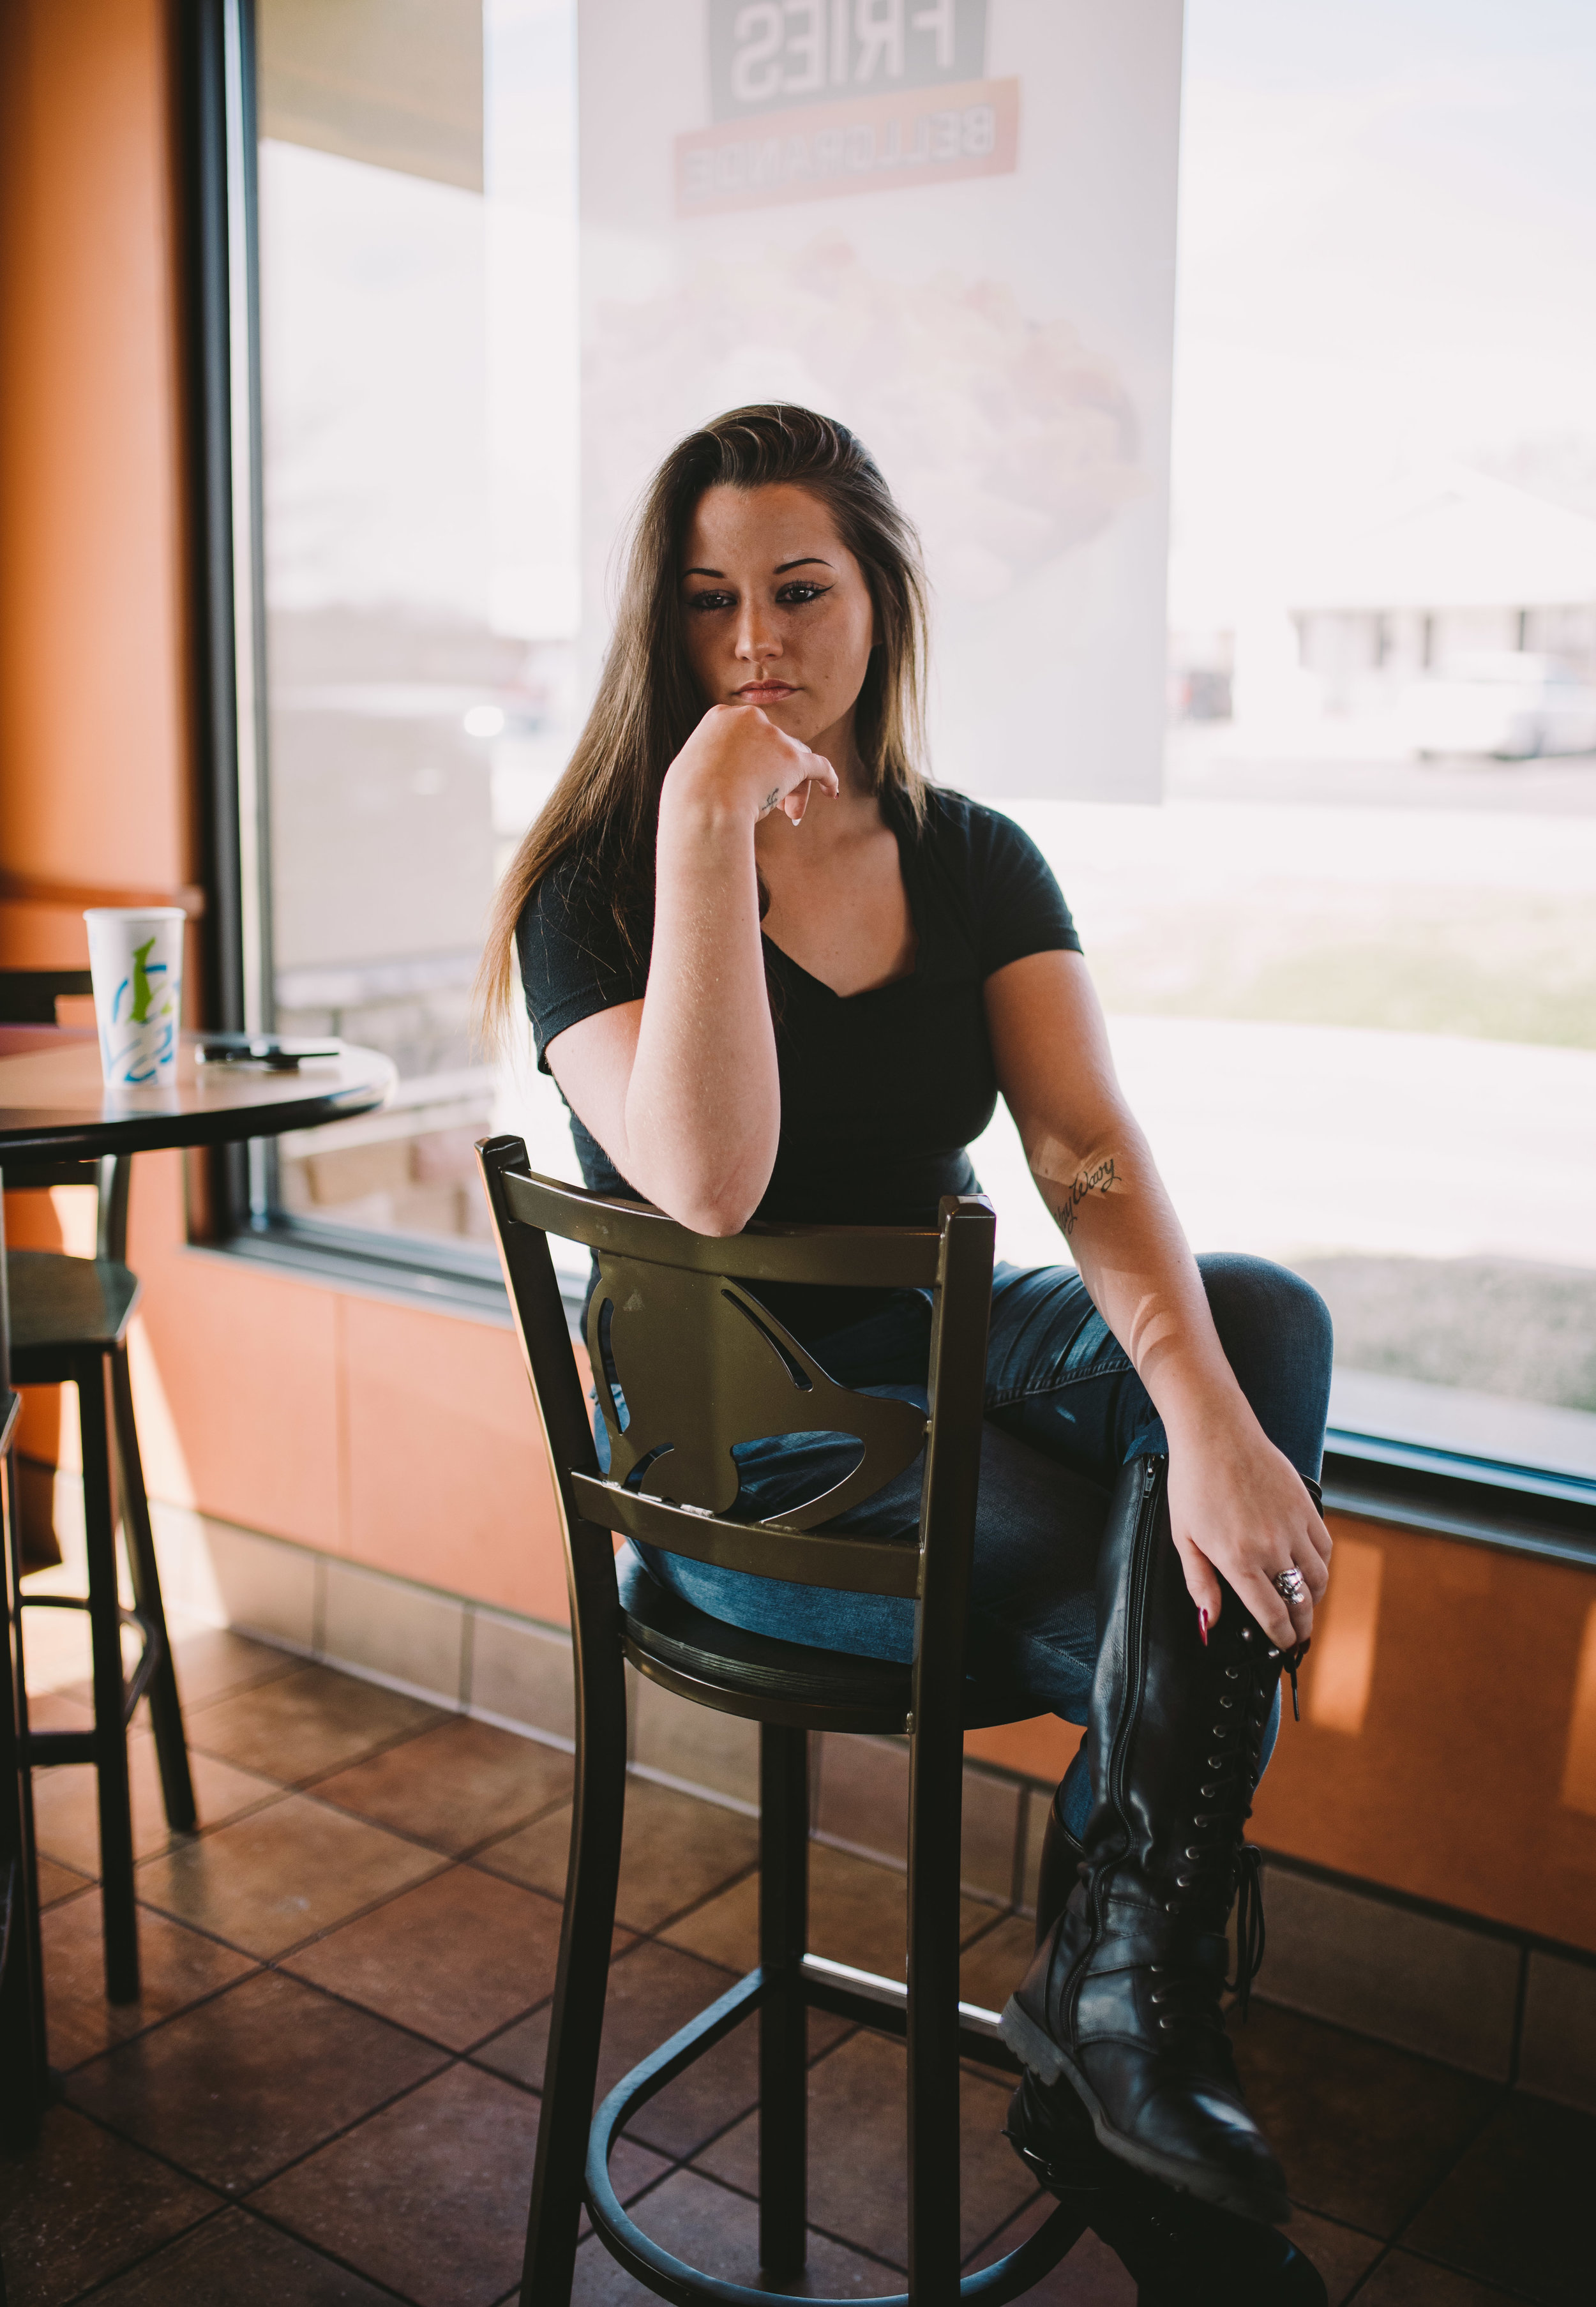 FastFoodPhotoChallenge_KaitlinRomack_March2018_Senior Photography In Tempe_ArizonaPortraitPhotographer_SamanthaRosePhotography_final_008.JPG